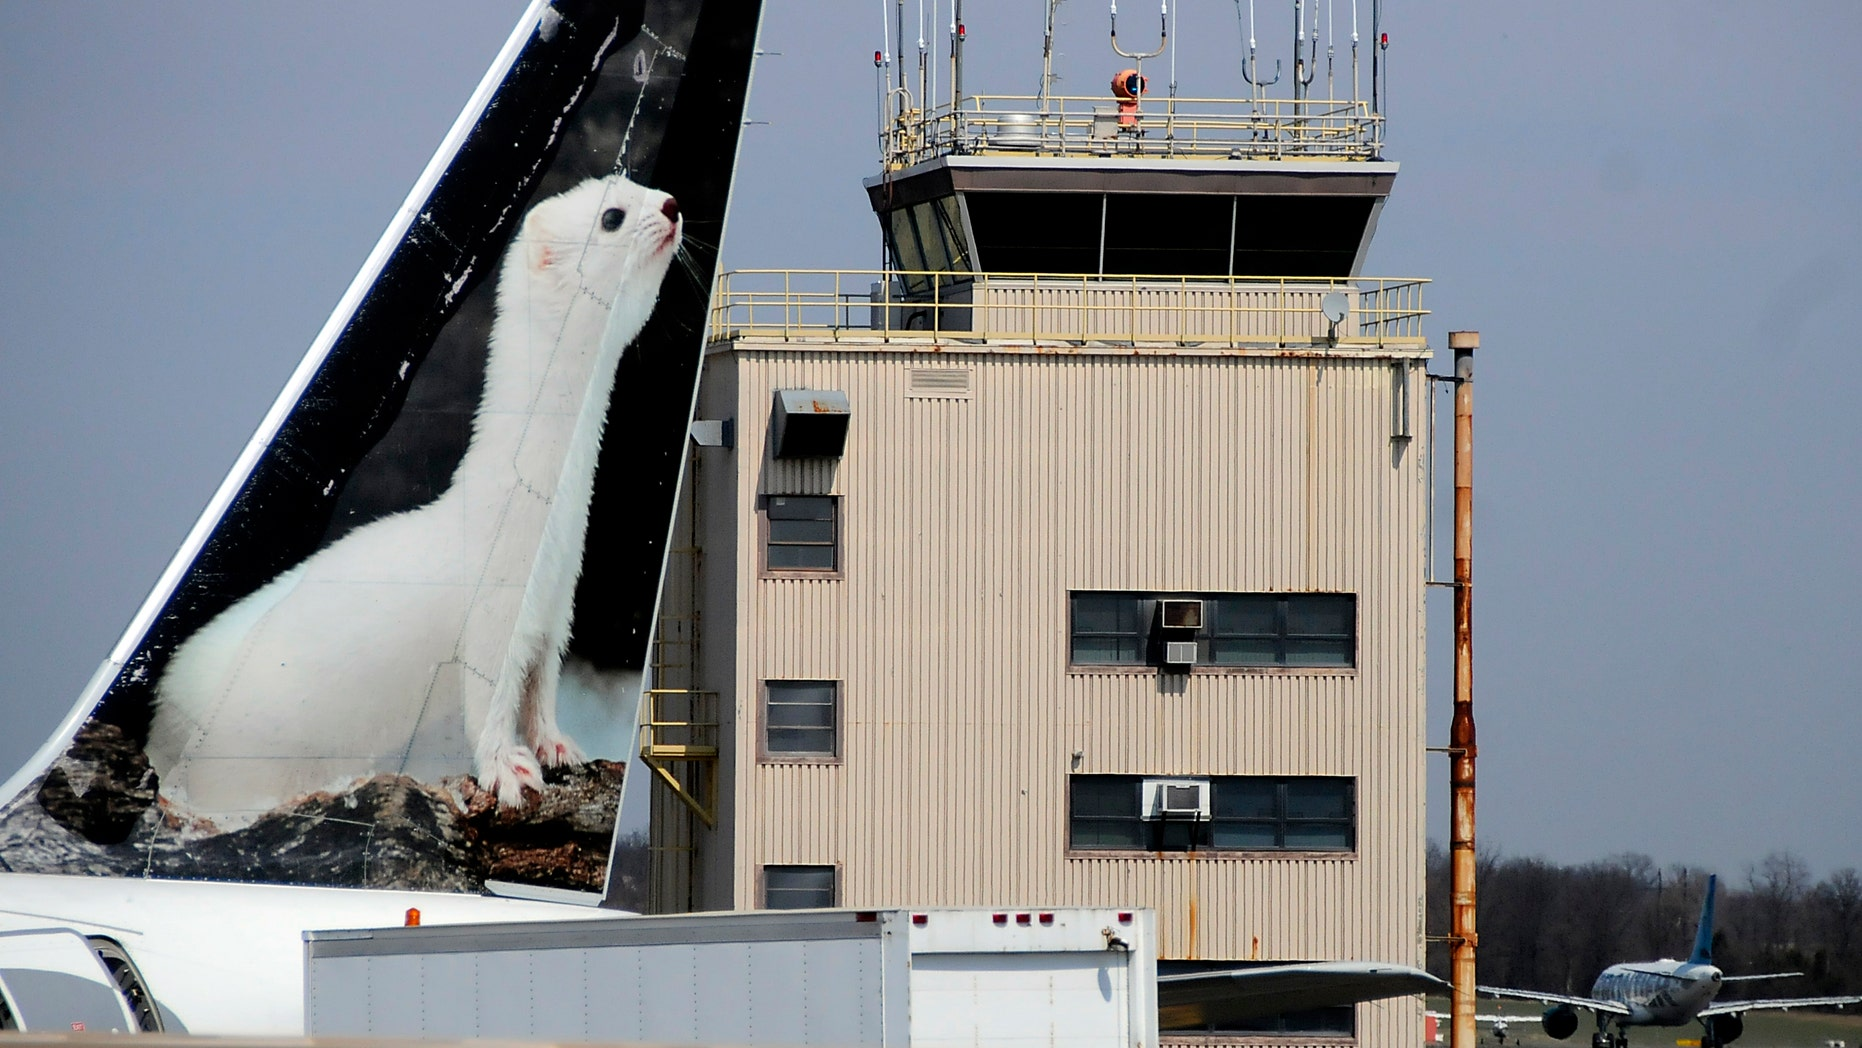 FILE - In this April 8, 2013, file photo, the painted tail appears on a Frontier Airlines aircraft parked at a gate at Trenton-Mercer Airport in Ewing, N.J. Four women pilots who fly for Frontier want the airline to change policies on maternity leave and make it easier for new mothers to pump breast milk once they have returned to work. The American Civil Liberties Union has filed discrimination charges with the Equal Employment Opportunity Commission on behalf of the four. (Jackie Schear/The Trentonian via AP)  TRENTON TIMES OUT; PHILLY METRO OUT; MANDATORY CREDIT